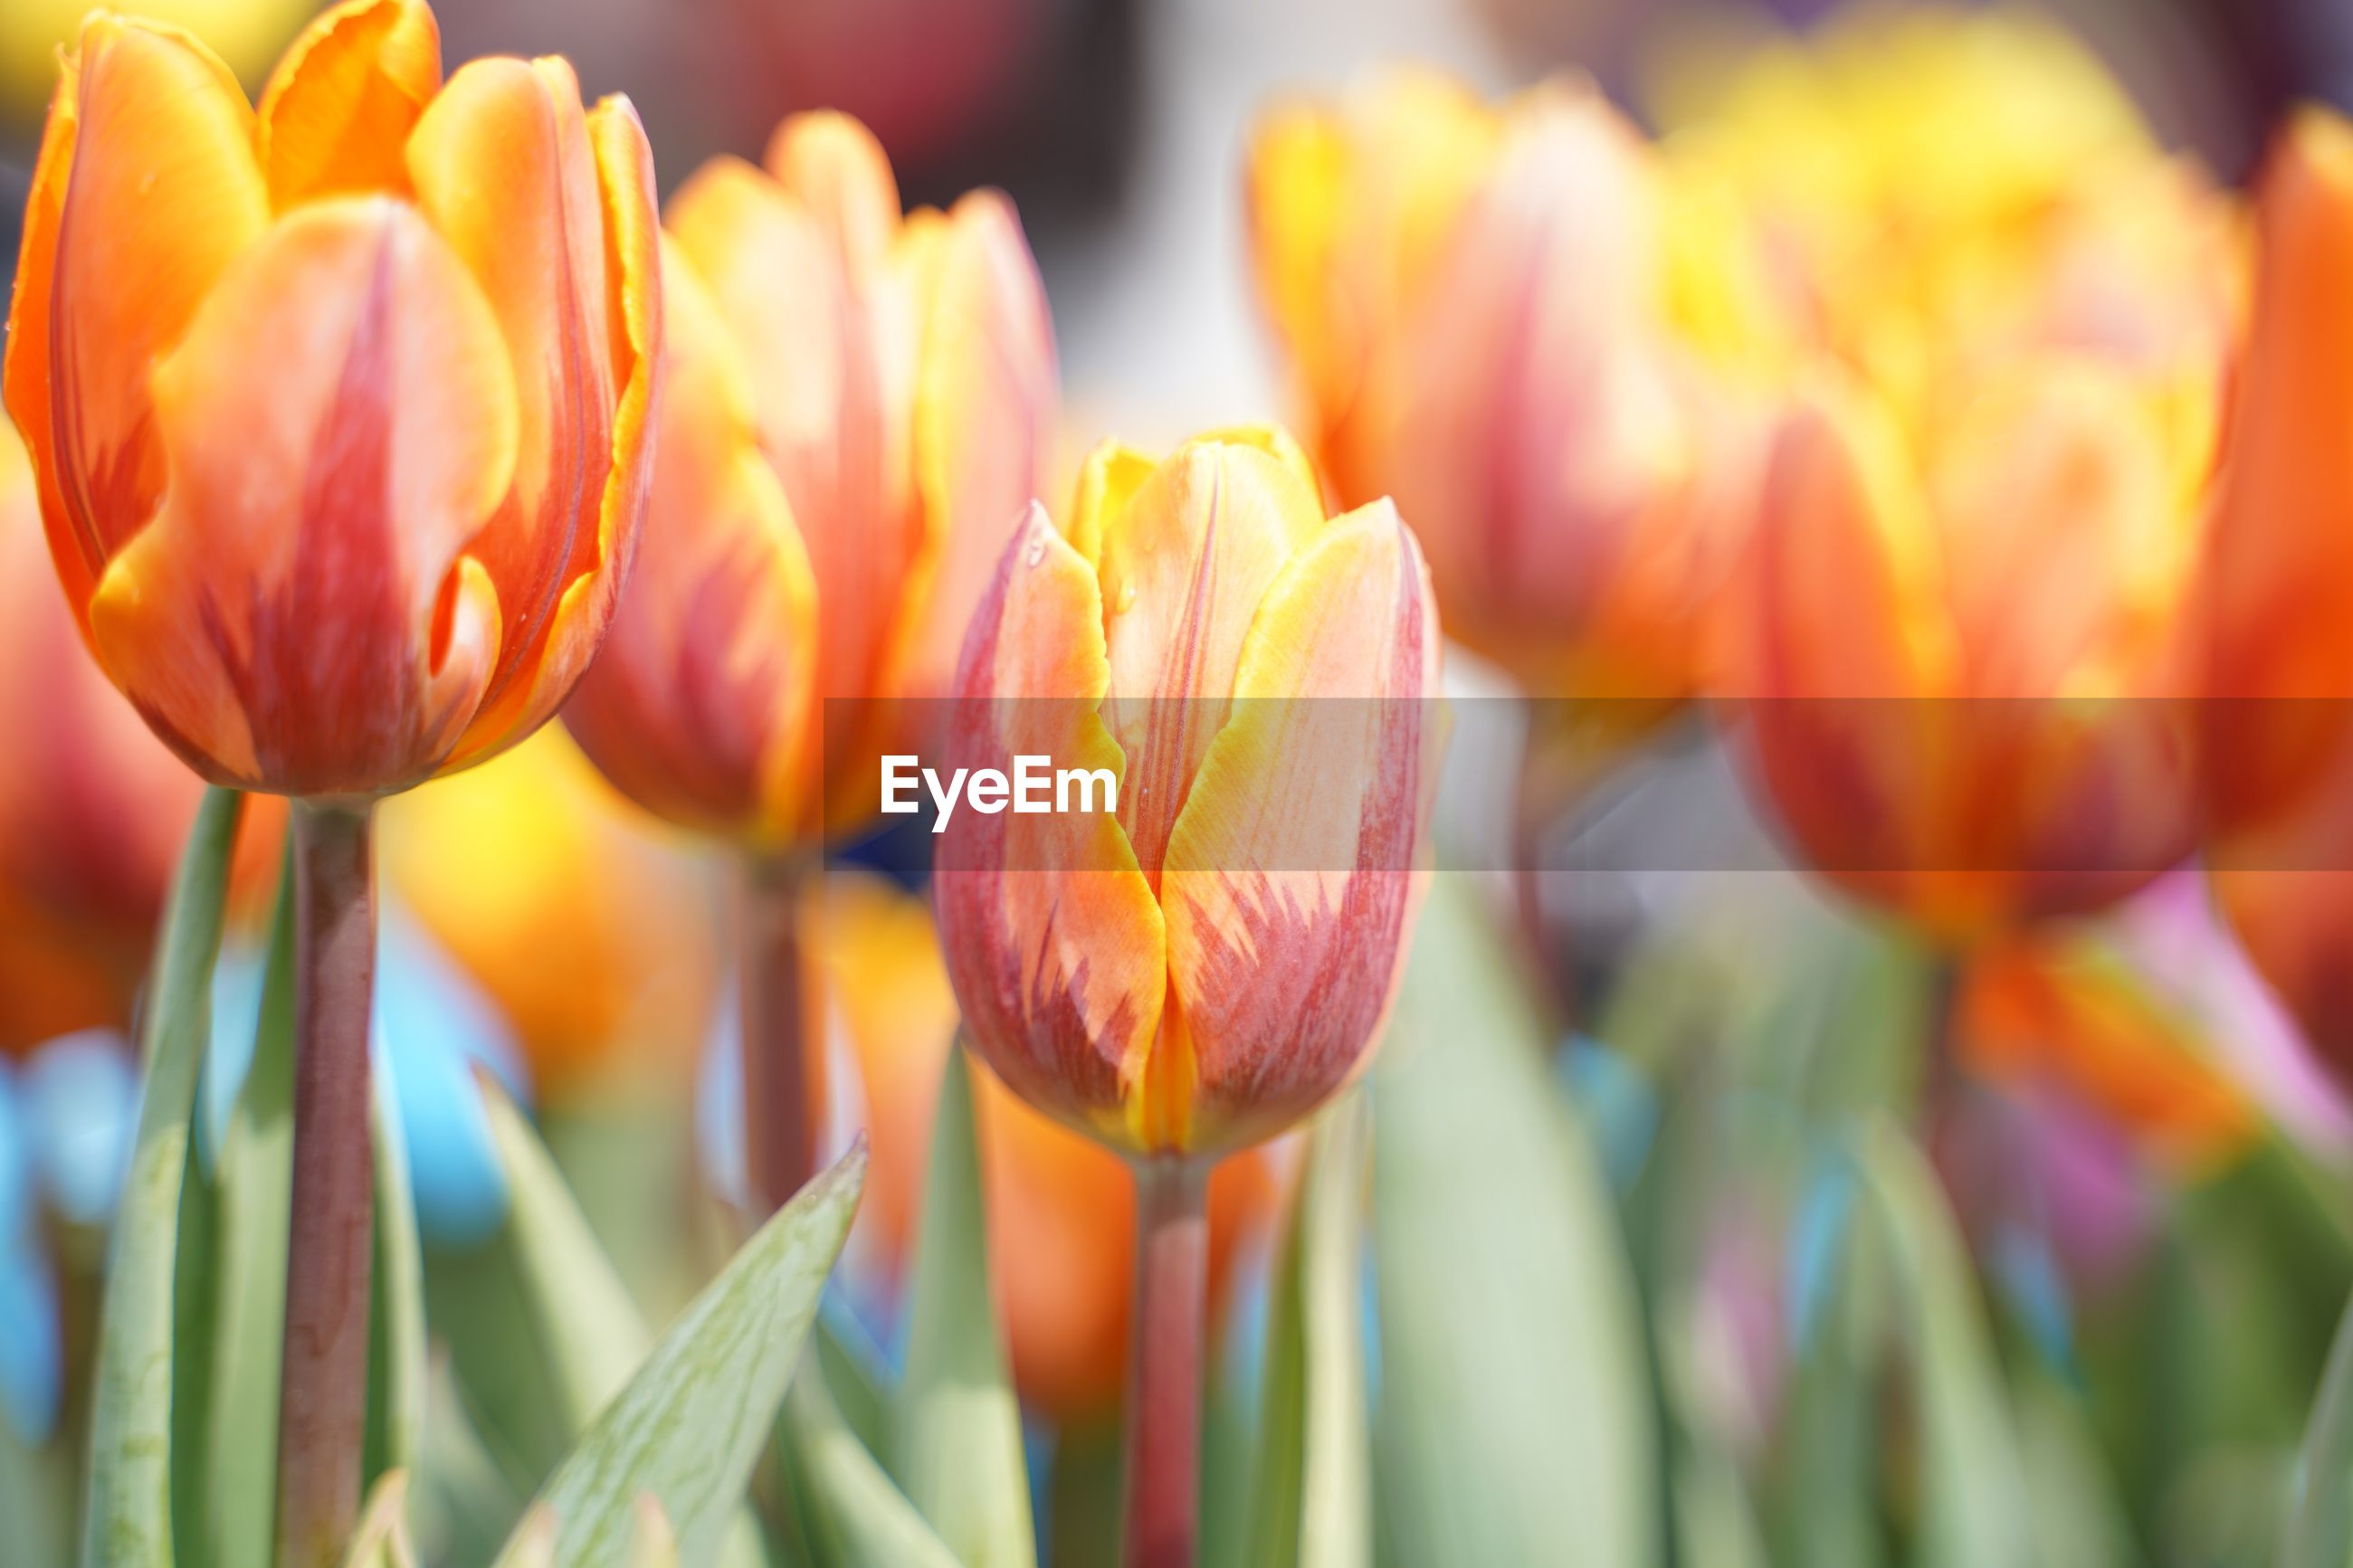 CLOSE-UP OF TULIPS IN BLOOM